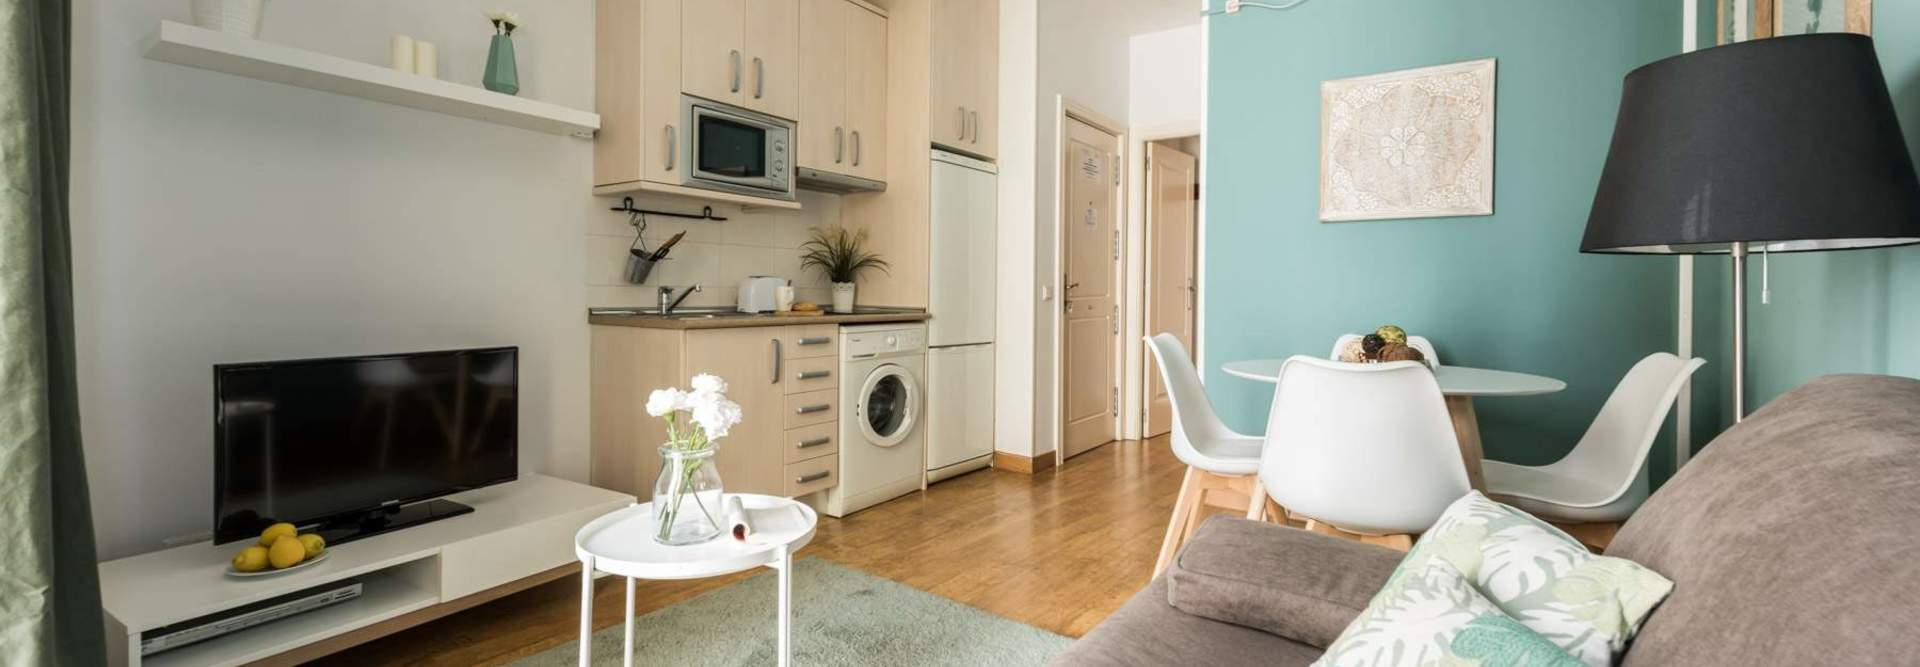 Home alquiler apartamento madrid centro mad4rent  19